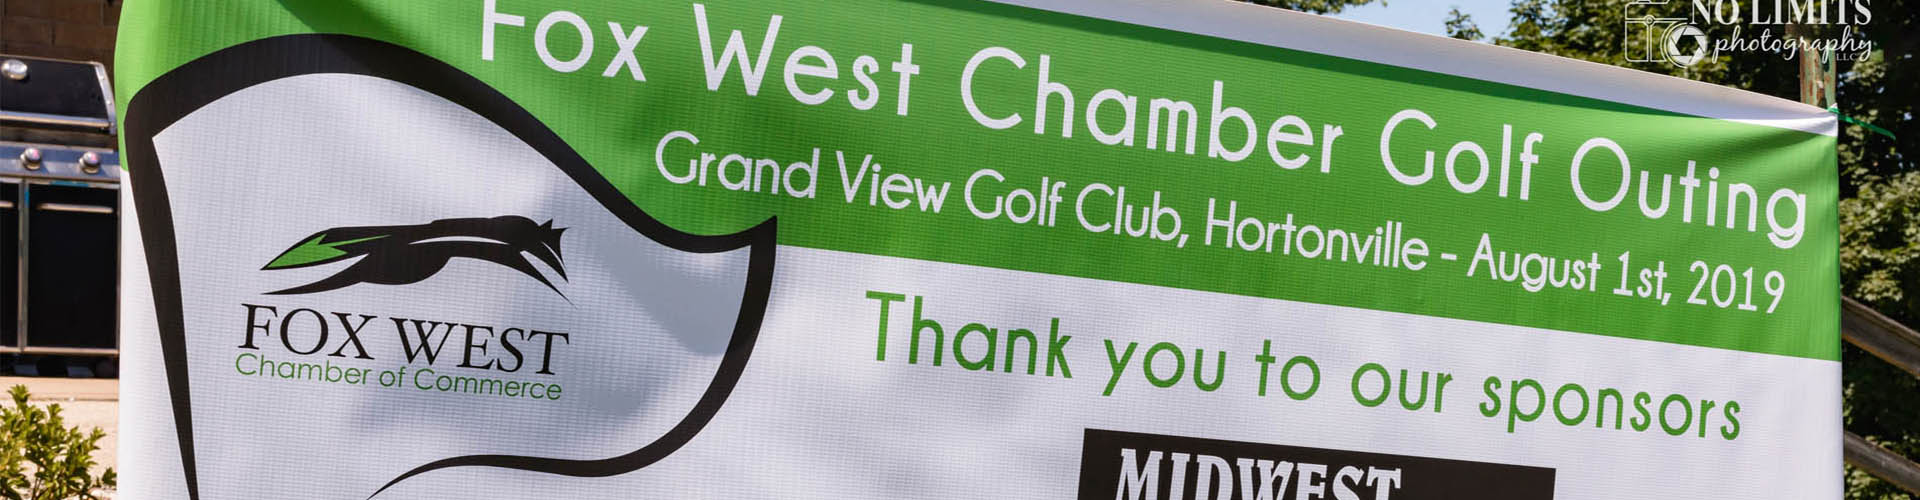 Golf Outing Fox West Chamber